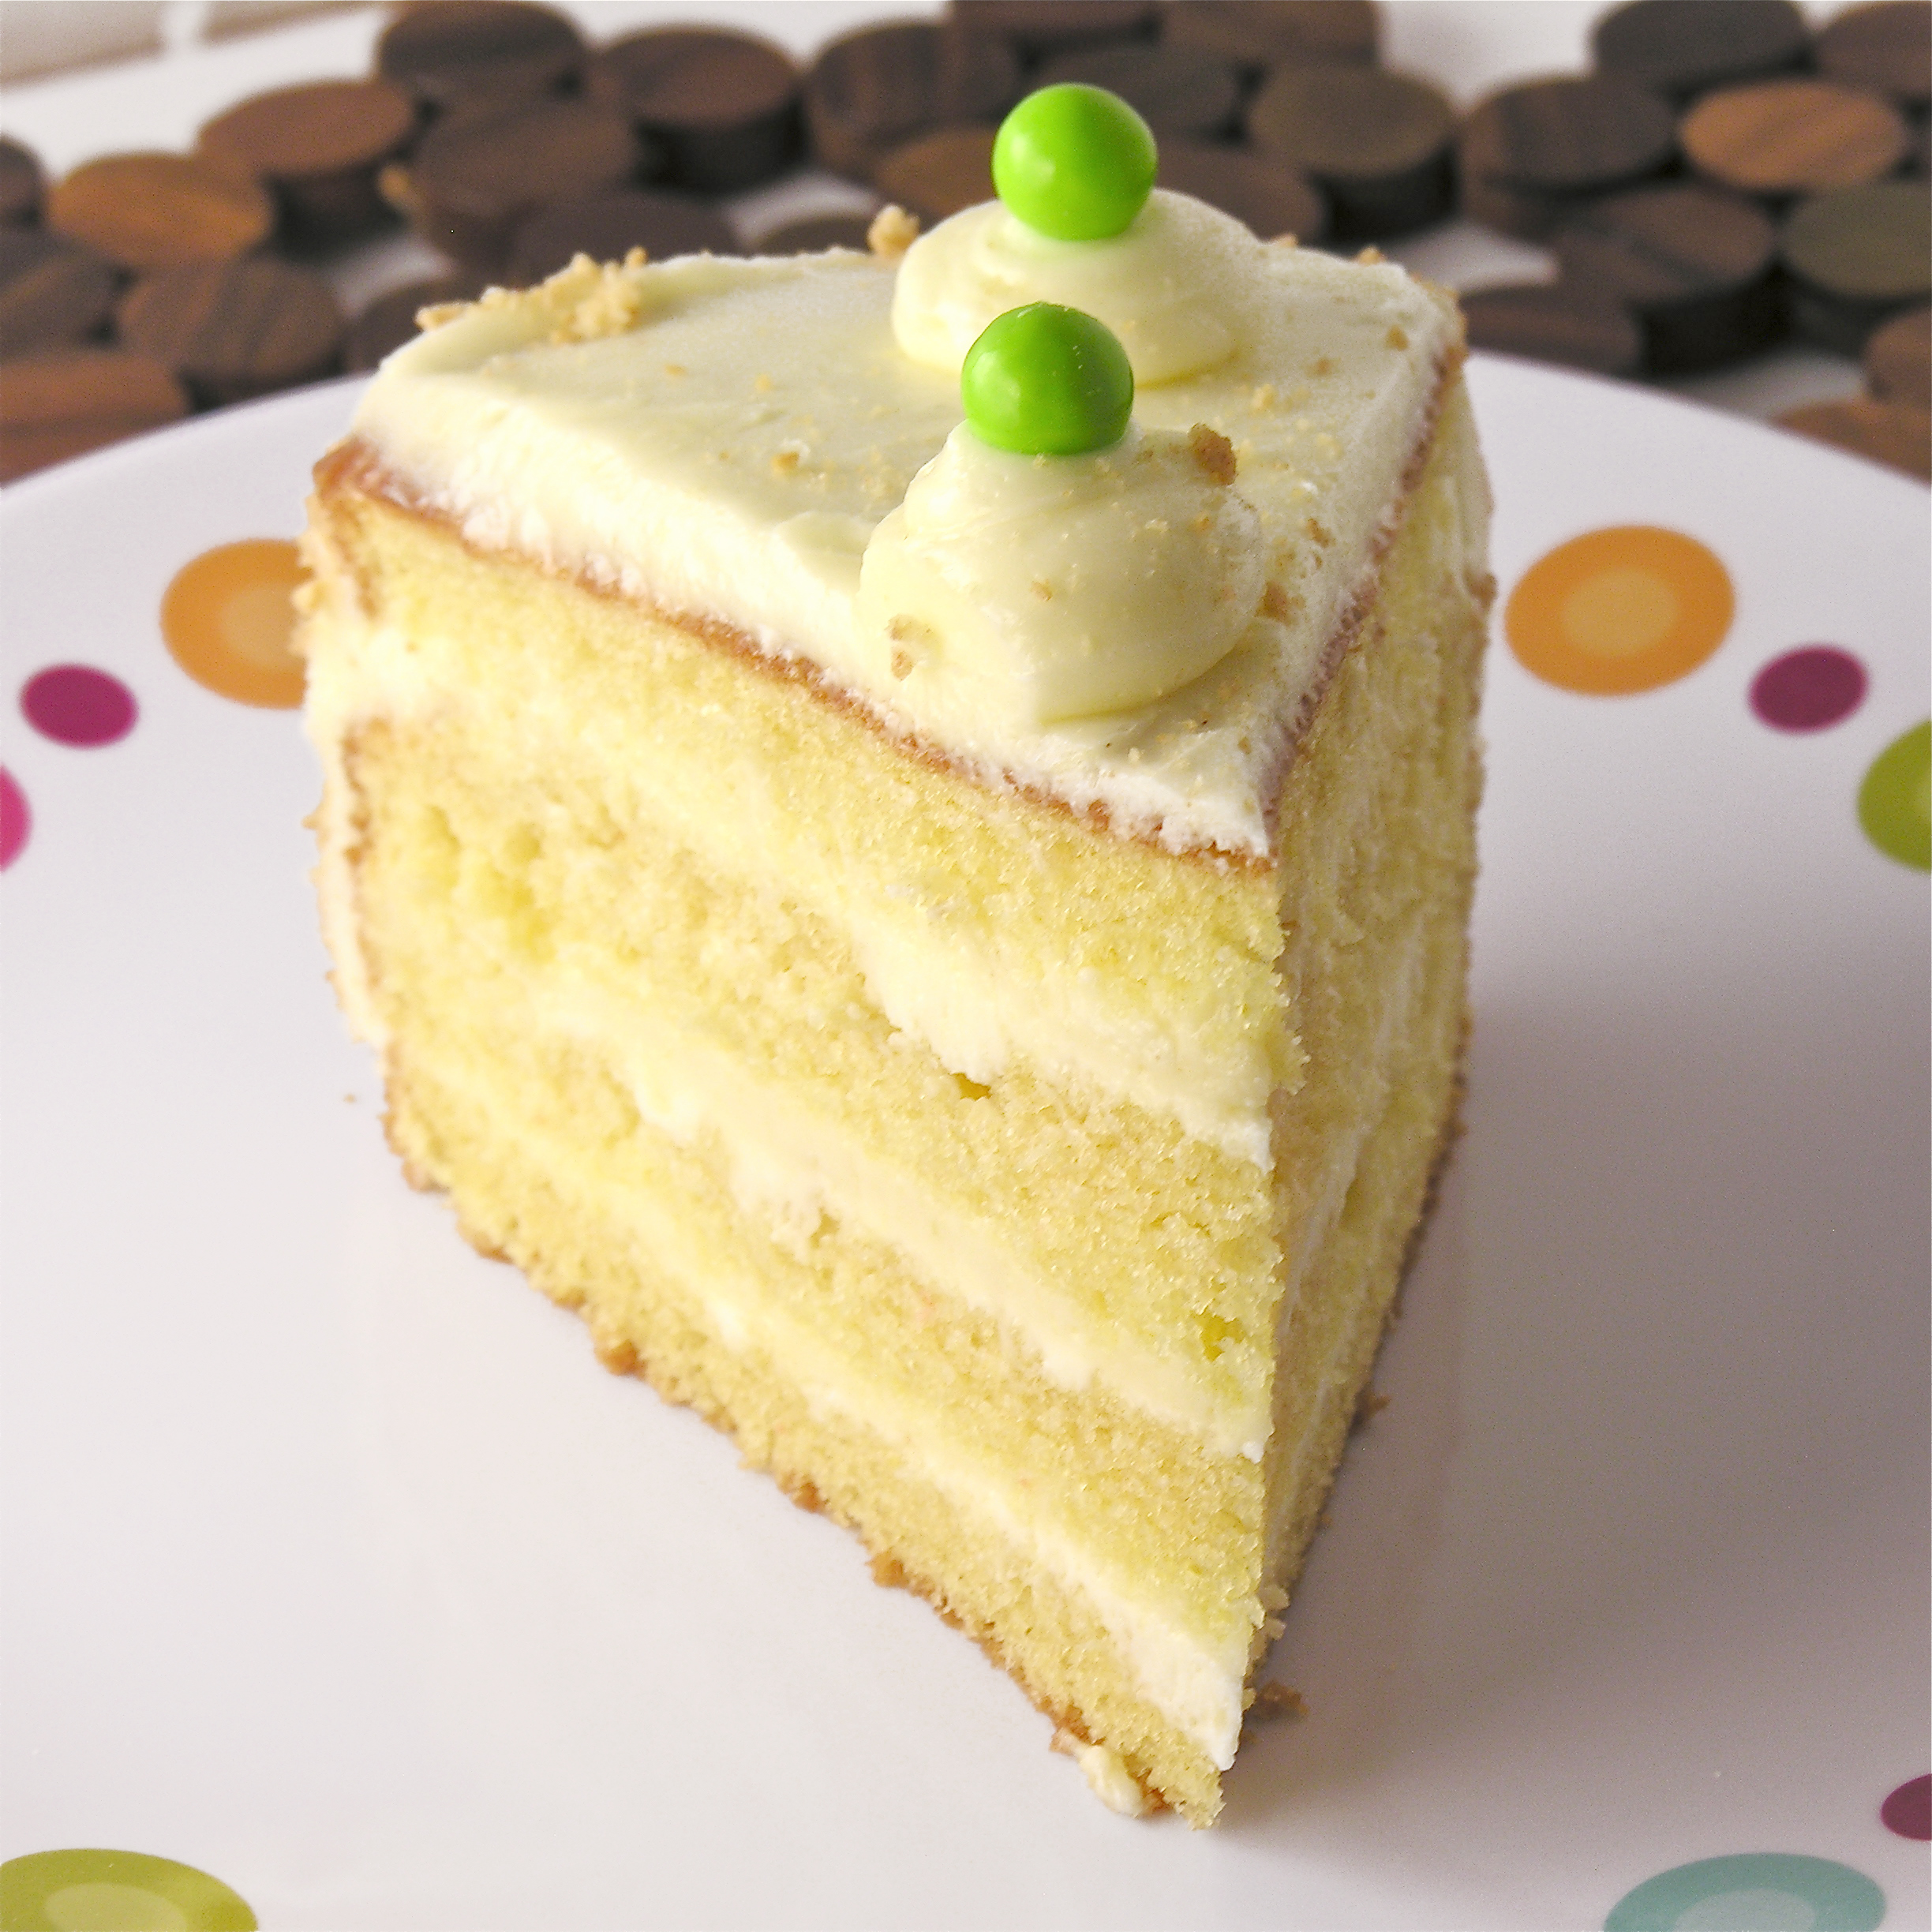 Key lime cake cream cheese icing recipe